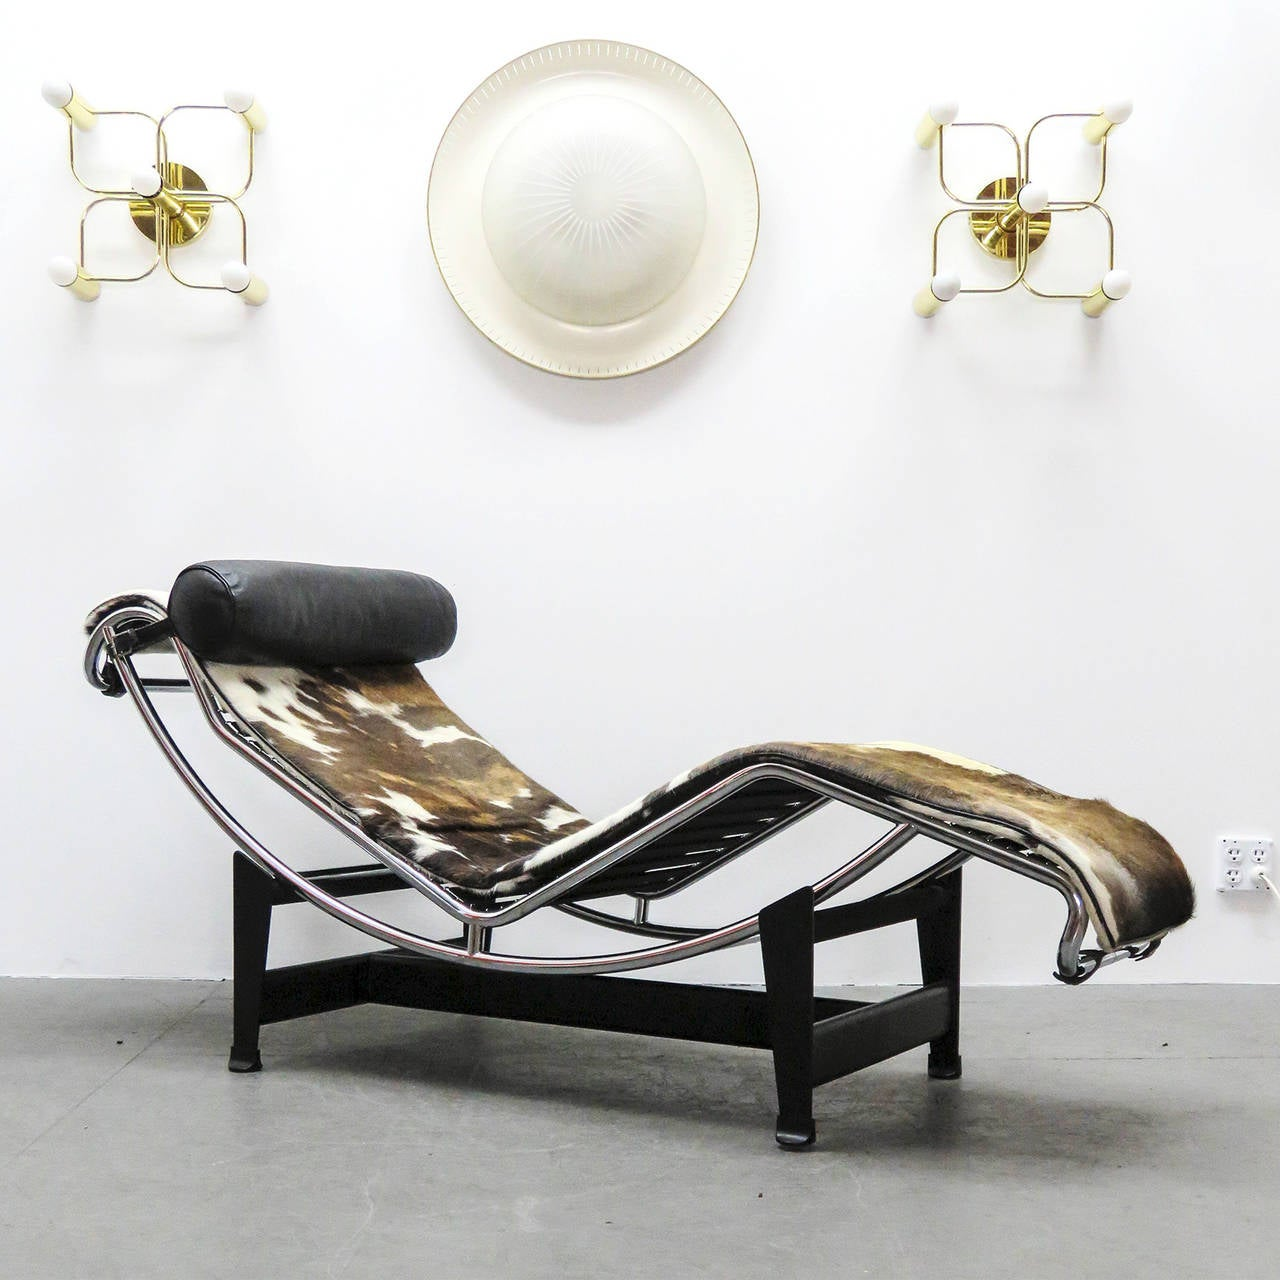 Lc4 chaise by le corbusier at 1stdibs for Chaise corbusier